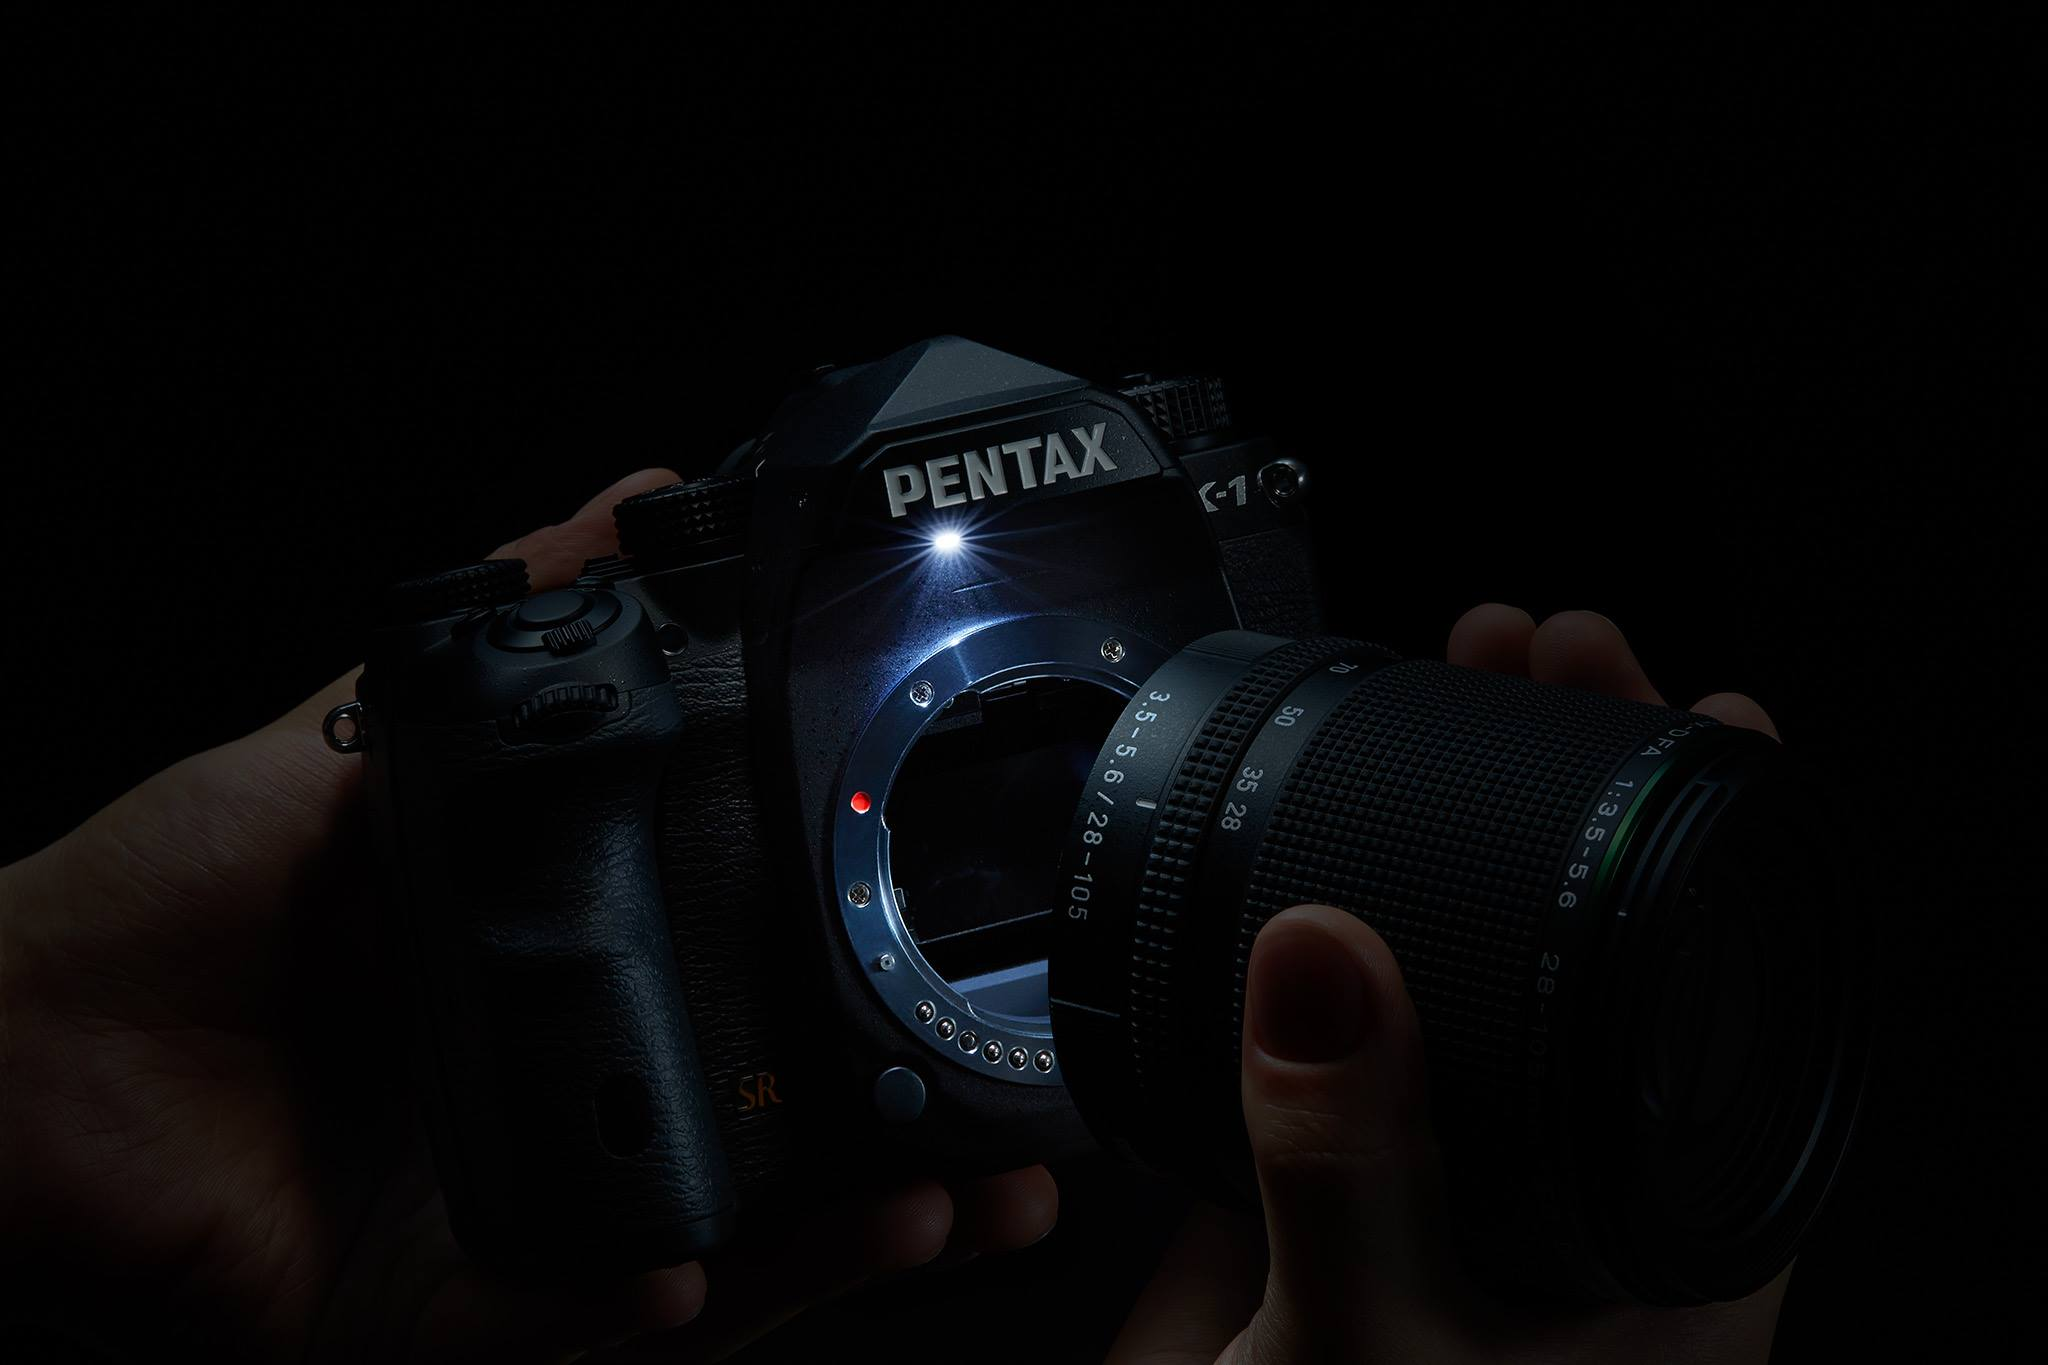 Pentax K1 Full Frame Camera Announced! - Luke O\'Brien Photography